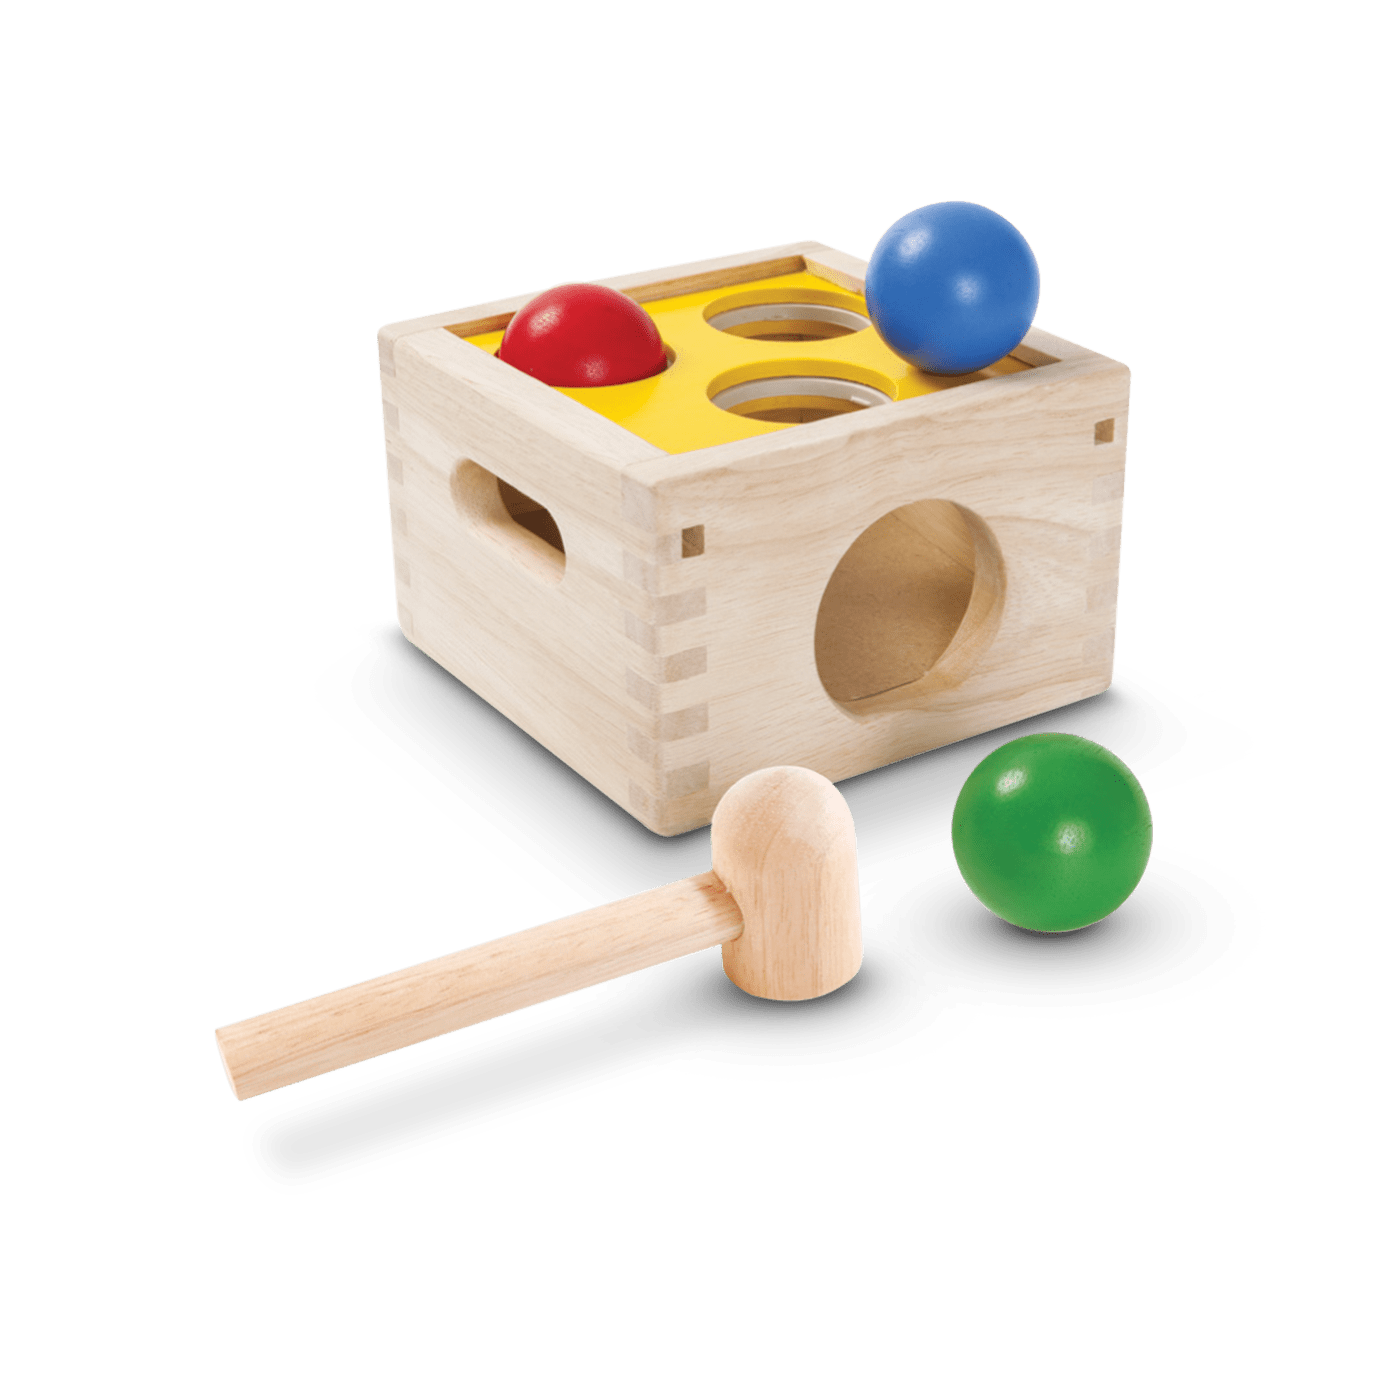 9424_PlanToys_PUNCH_and_DROP_Learning_and_Education_Fine_Motor_Coordination_Cause_and_Effect_Language_and_Communications_12m_Wooden_toys_Education_toys_Safety_Toys_Non-toxic_0.png